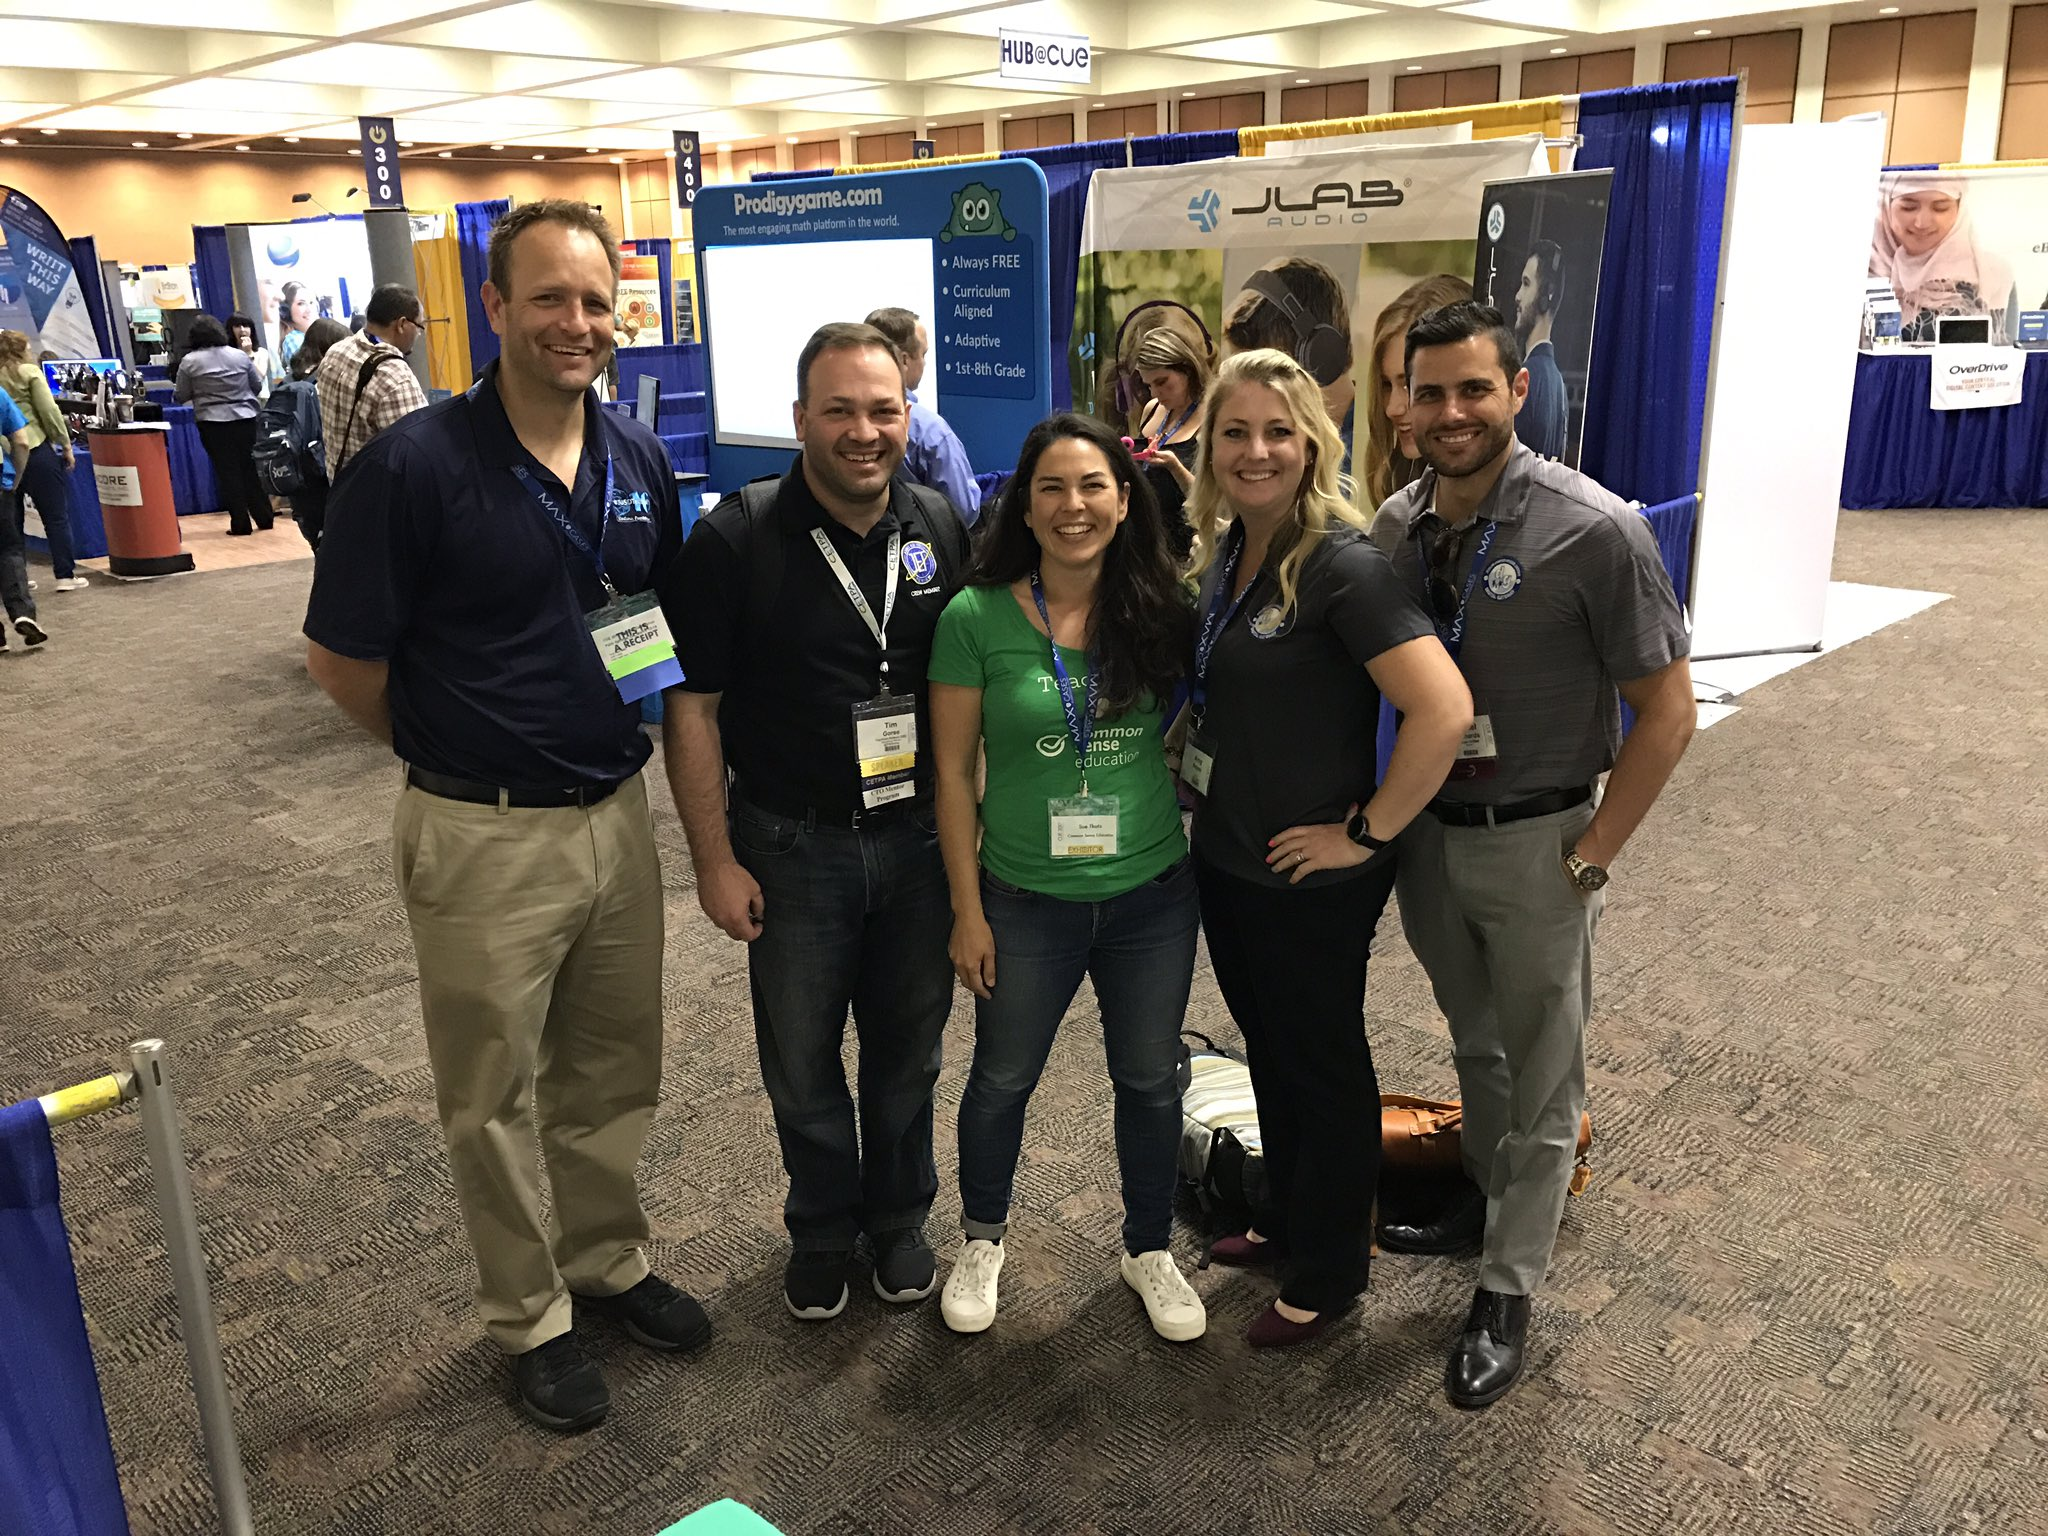 You have to take a snap of @SueThotz MVP school partners when they r at #cue17 @joshjusd @edtechgypsy @ThatEduTechGuy @TimGoree https://t.co/6xpLBPtc5w